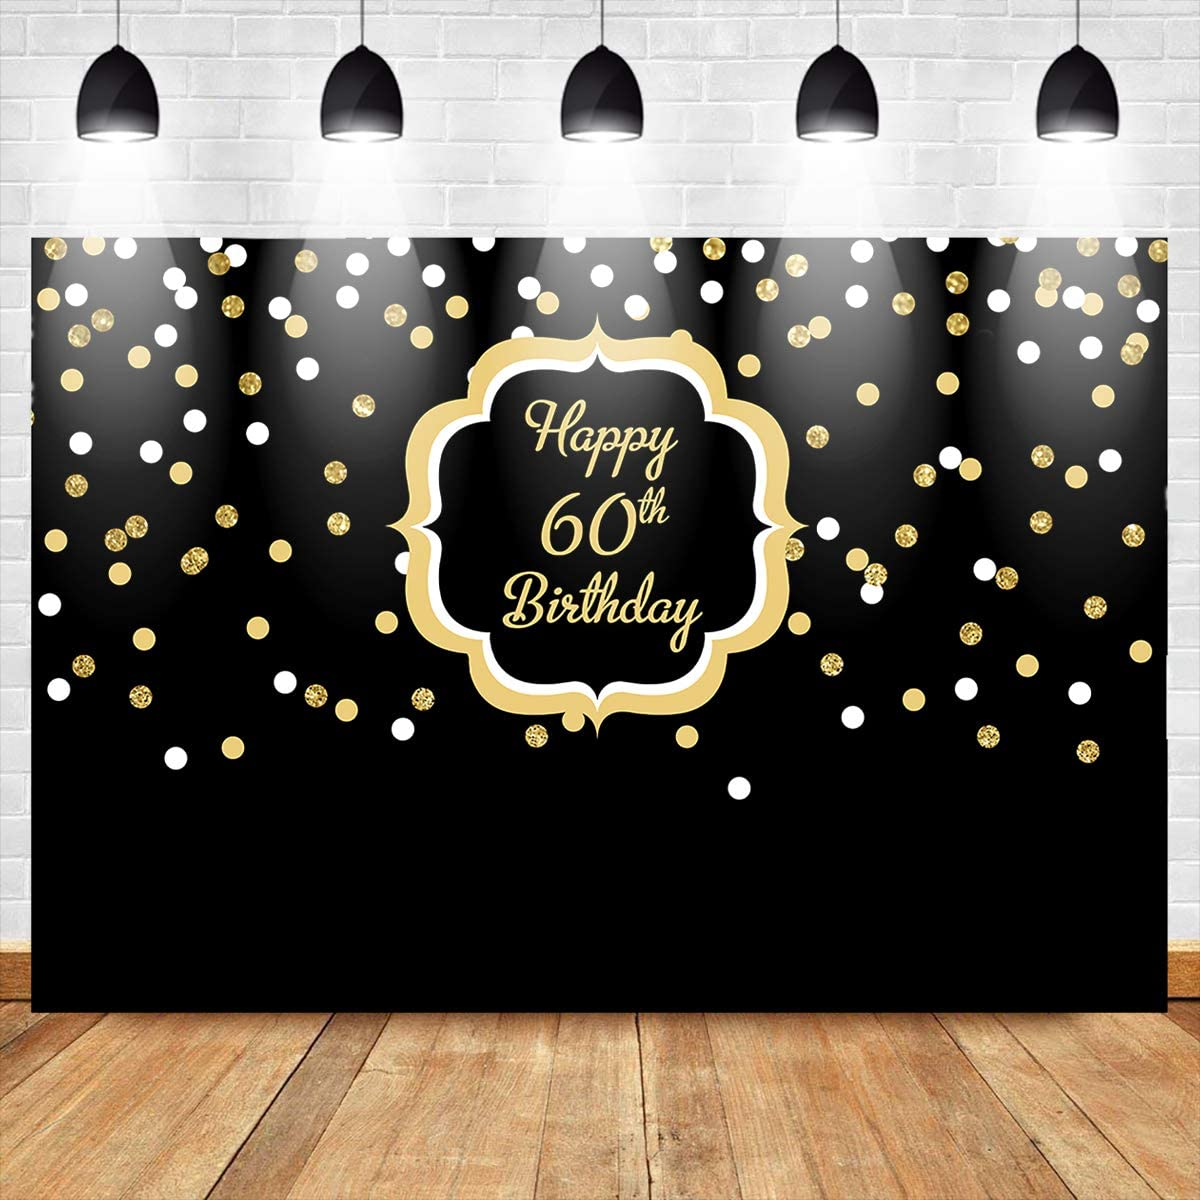 Mocsicka 60th Birthday Decoration Backdrops for Photography 8x6ft Glitter Gold and White Black Photo Background for Parties Banner Props for Pictures Gifts